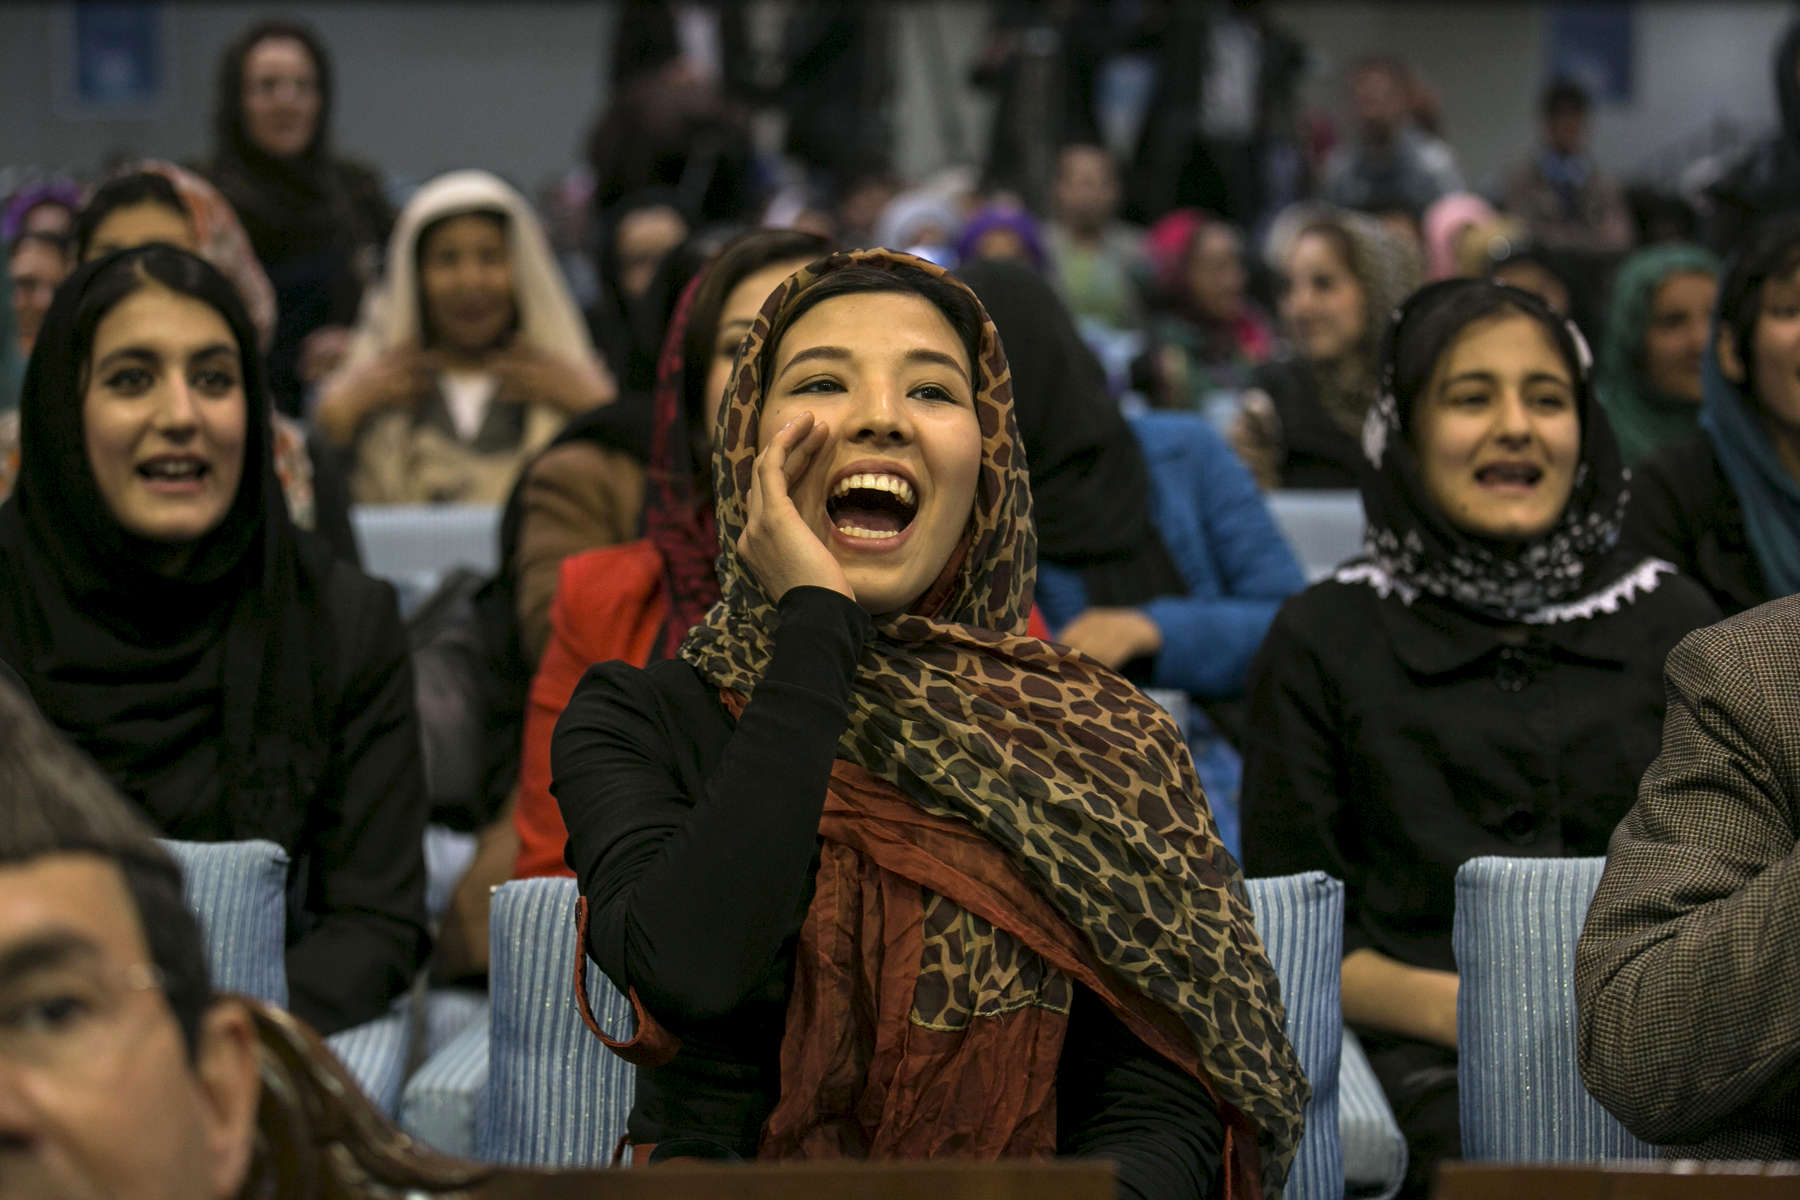 KABUL, AFGHANISTAN -MARCH 31: Afghan women cheer attending an election rally for Afghan vice presidential candidate Habiba Sarabi in Kabul, March 31, 2014. Afghans will go to the polls to vote on April 5th in Afghanistan\'s Presidential election. The election is the third presidential poll since the fall of the Taliban. (Photo by Paula Bronstein/ for the Wall Street Journal)